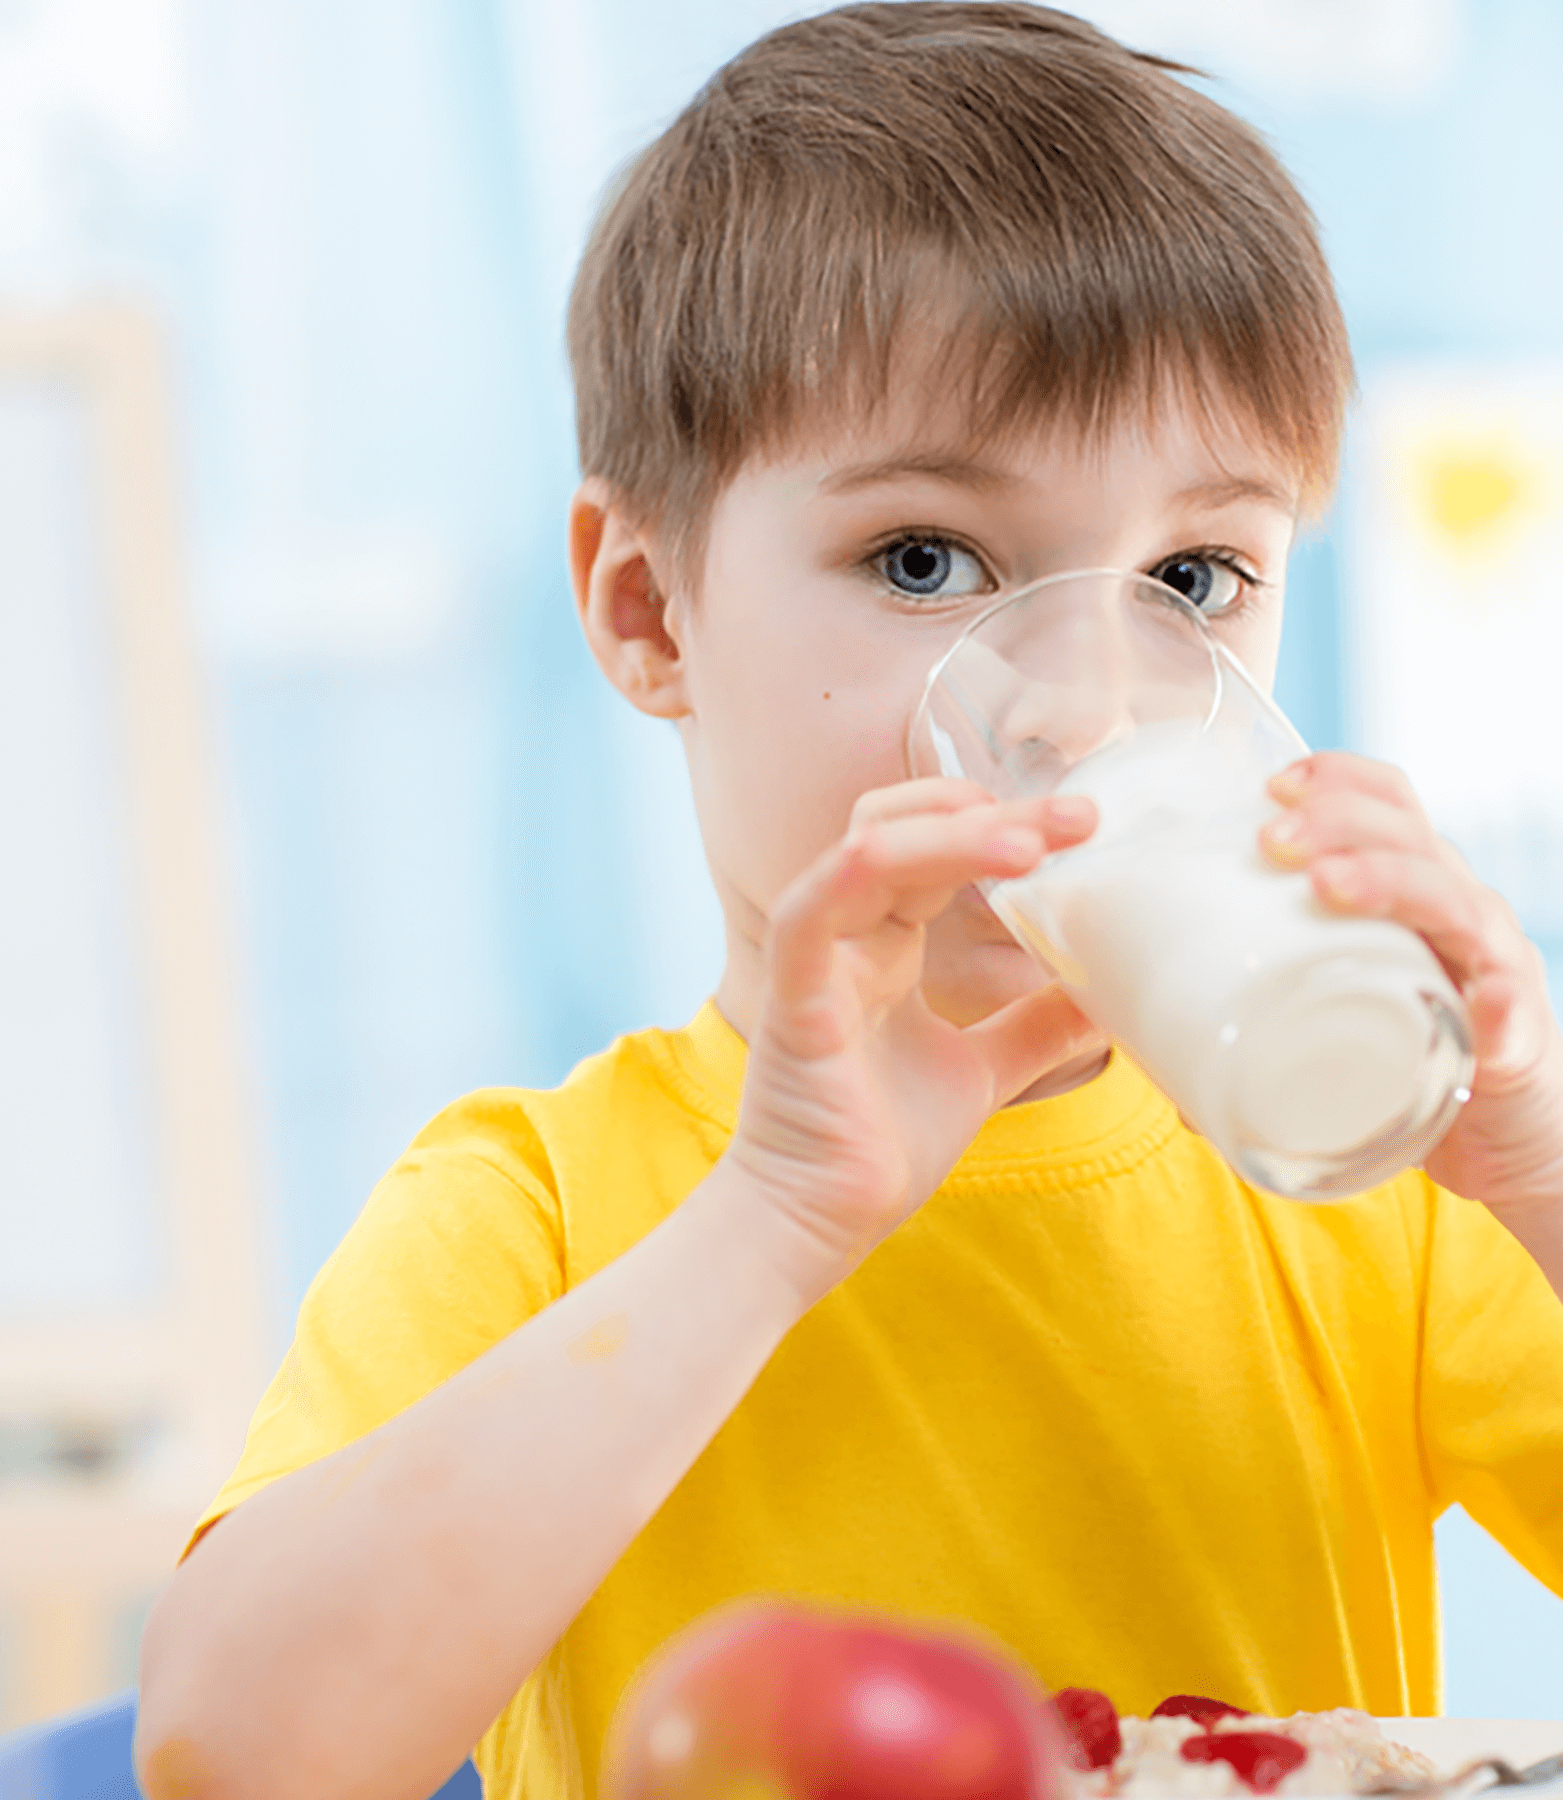 A young boy drinks milk from a glass